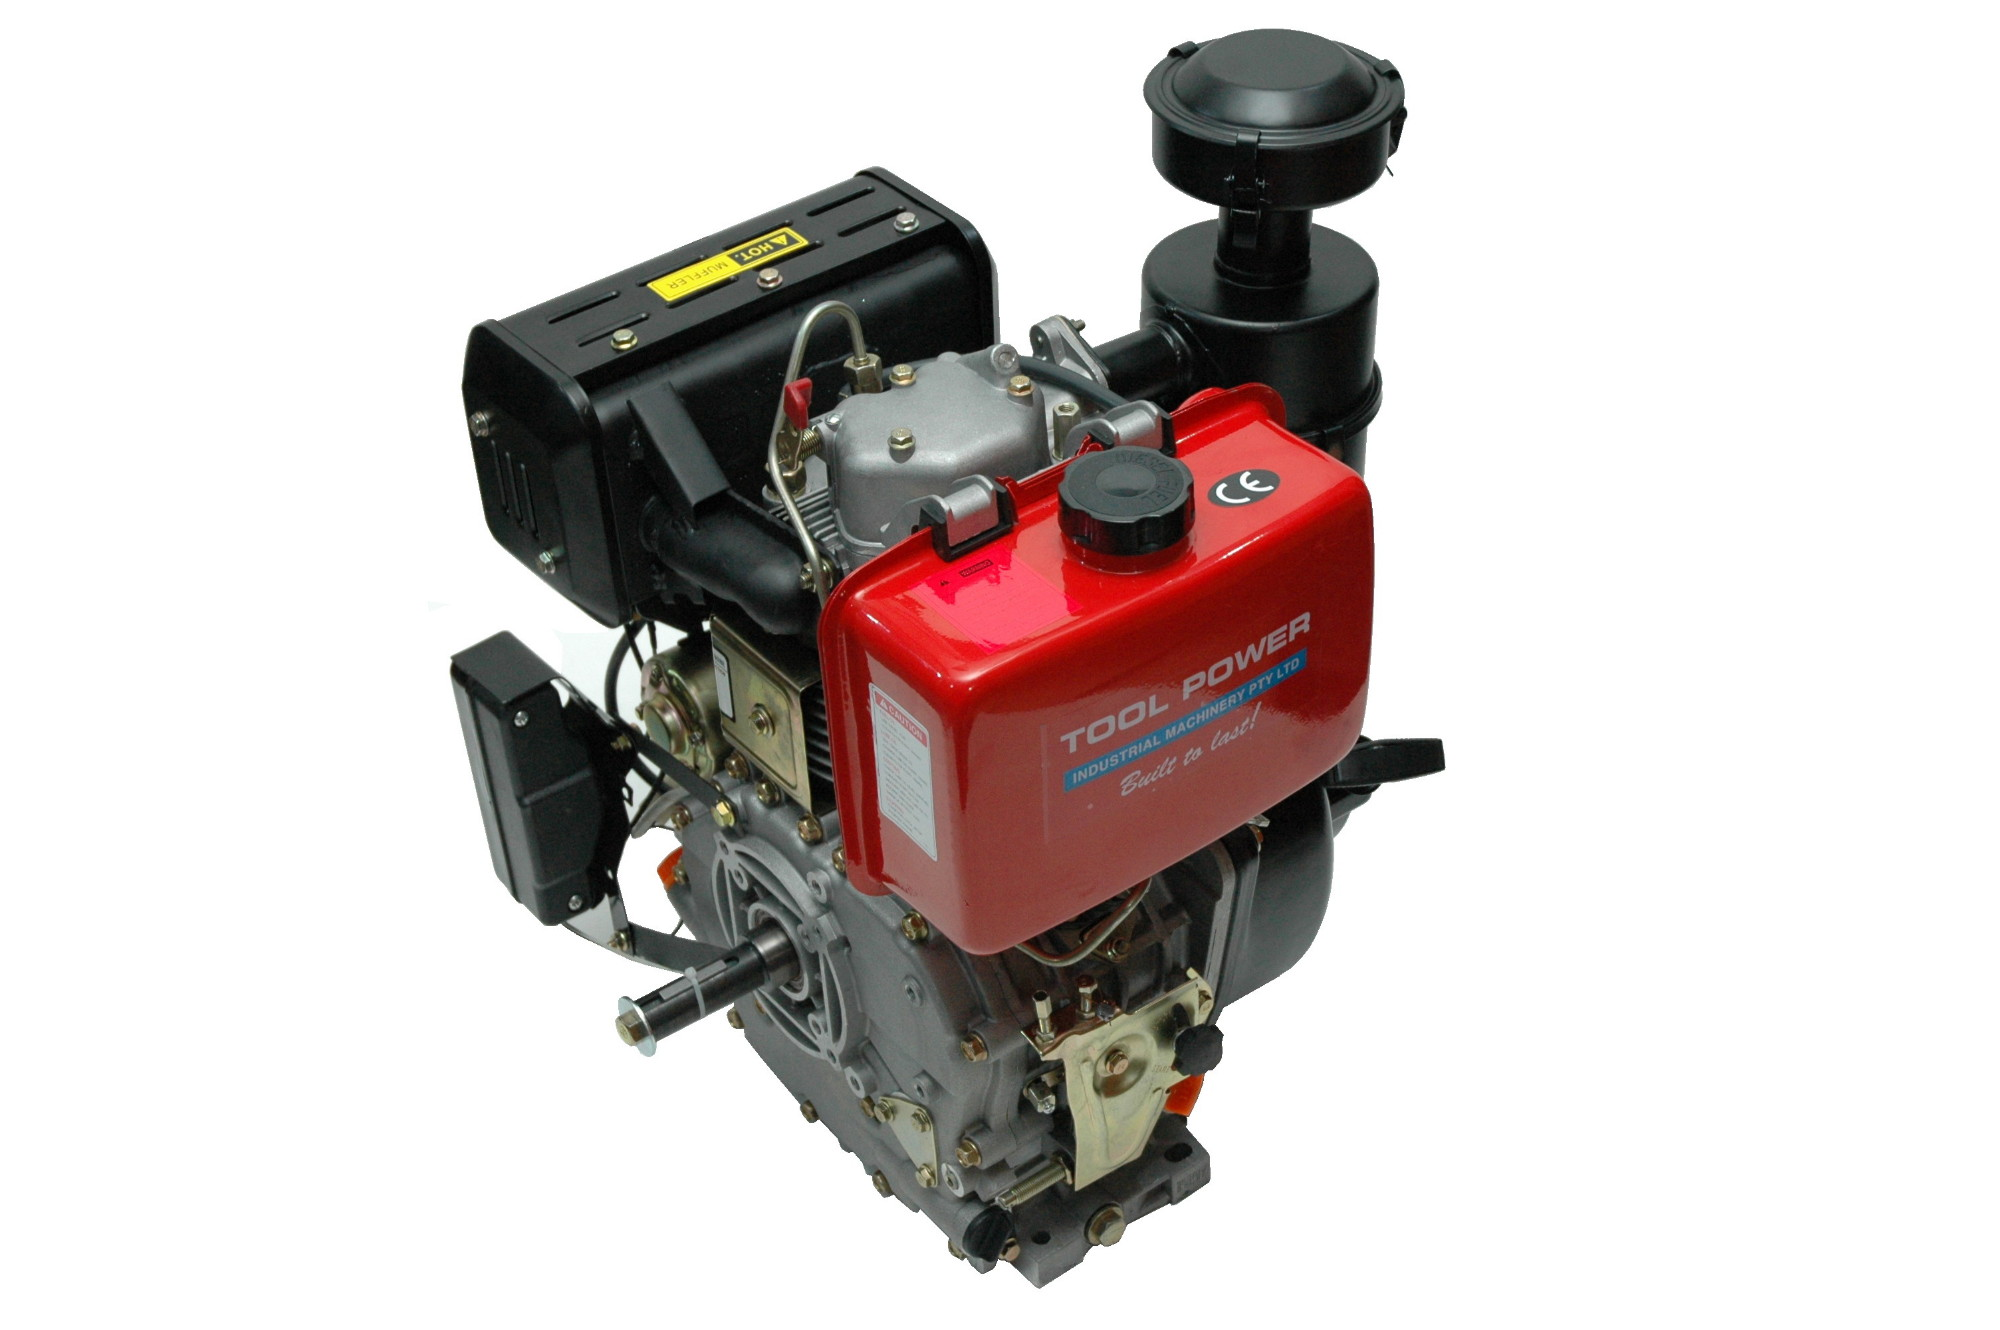 15 hp Tool Power engine